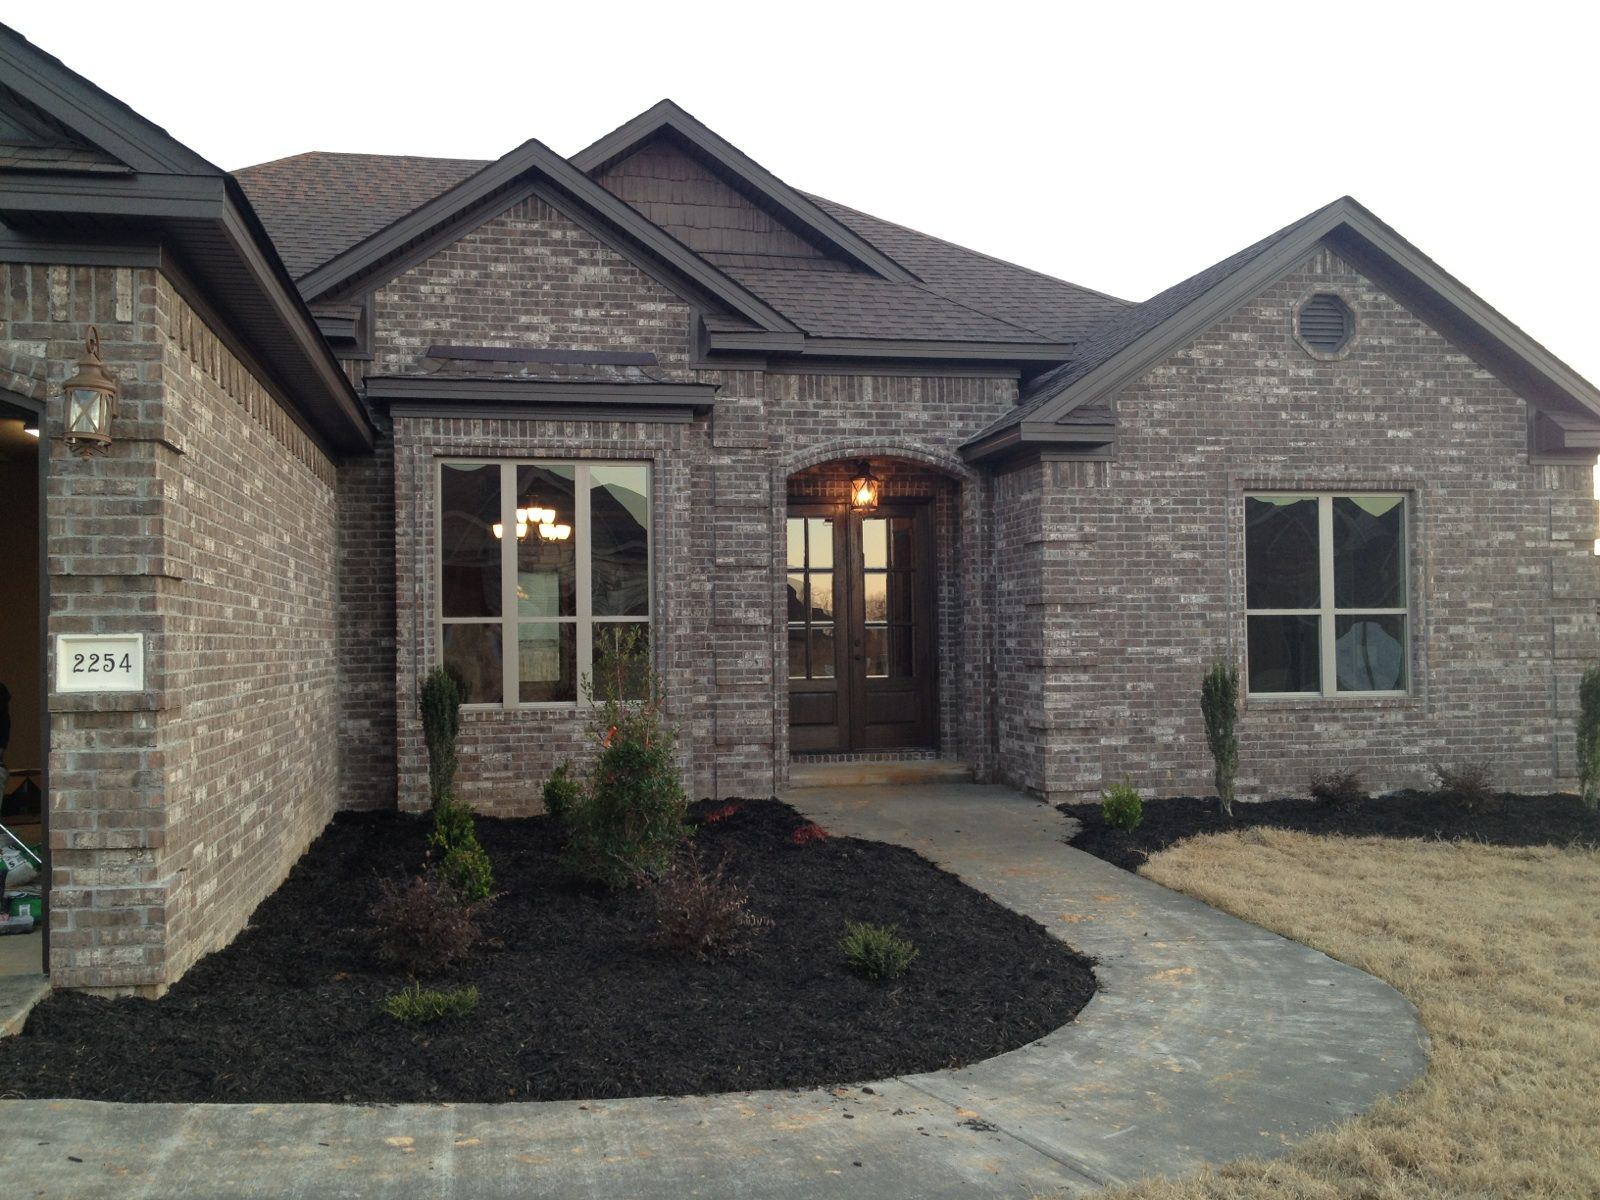 Our New House!! Love The Brick Color!!